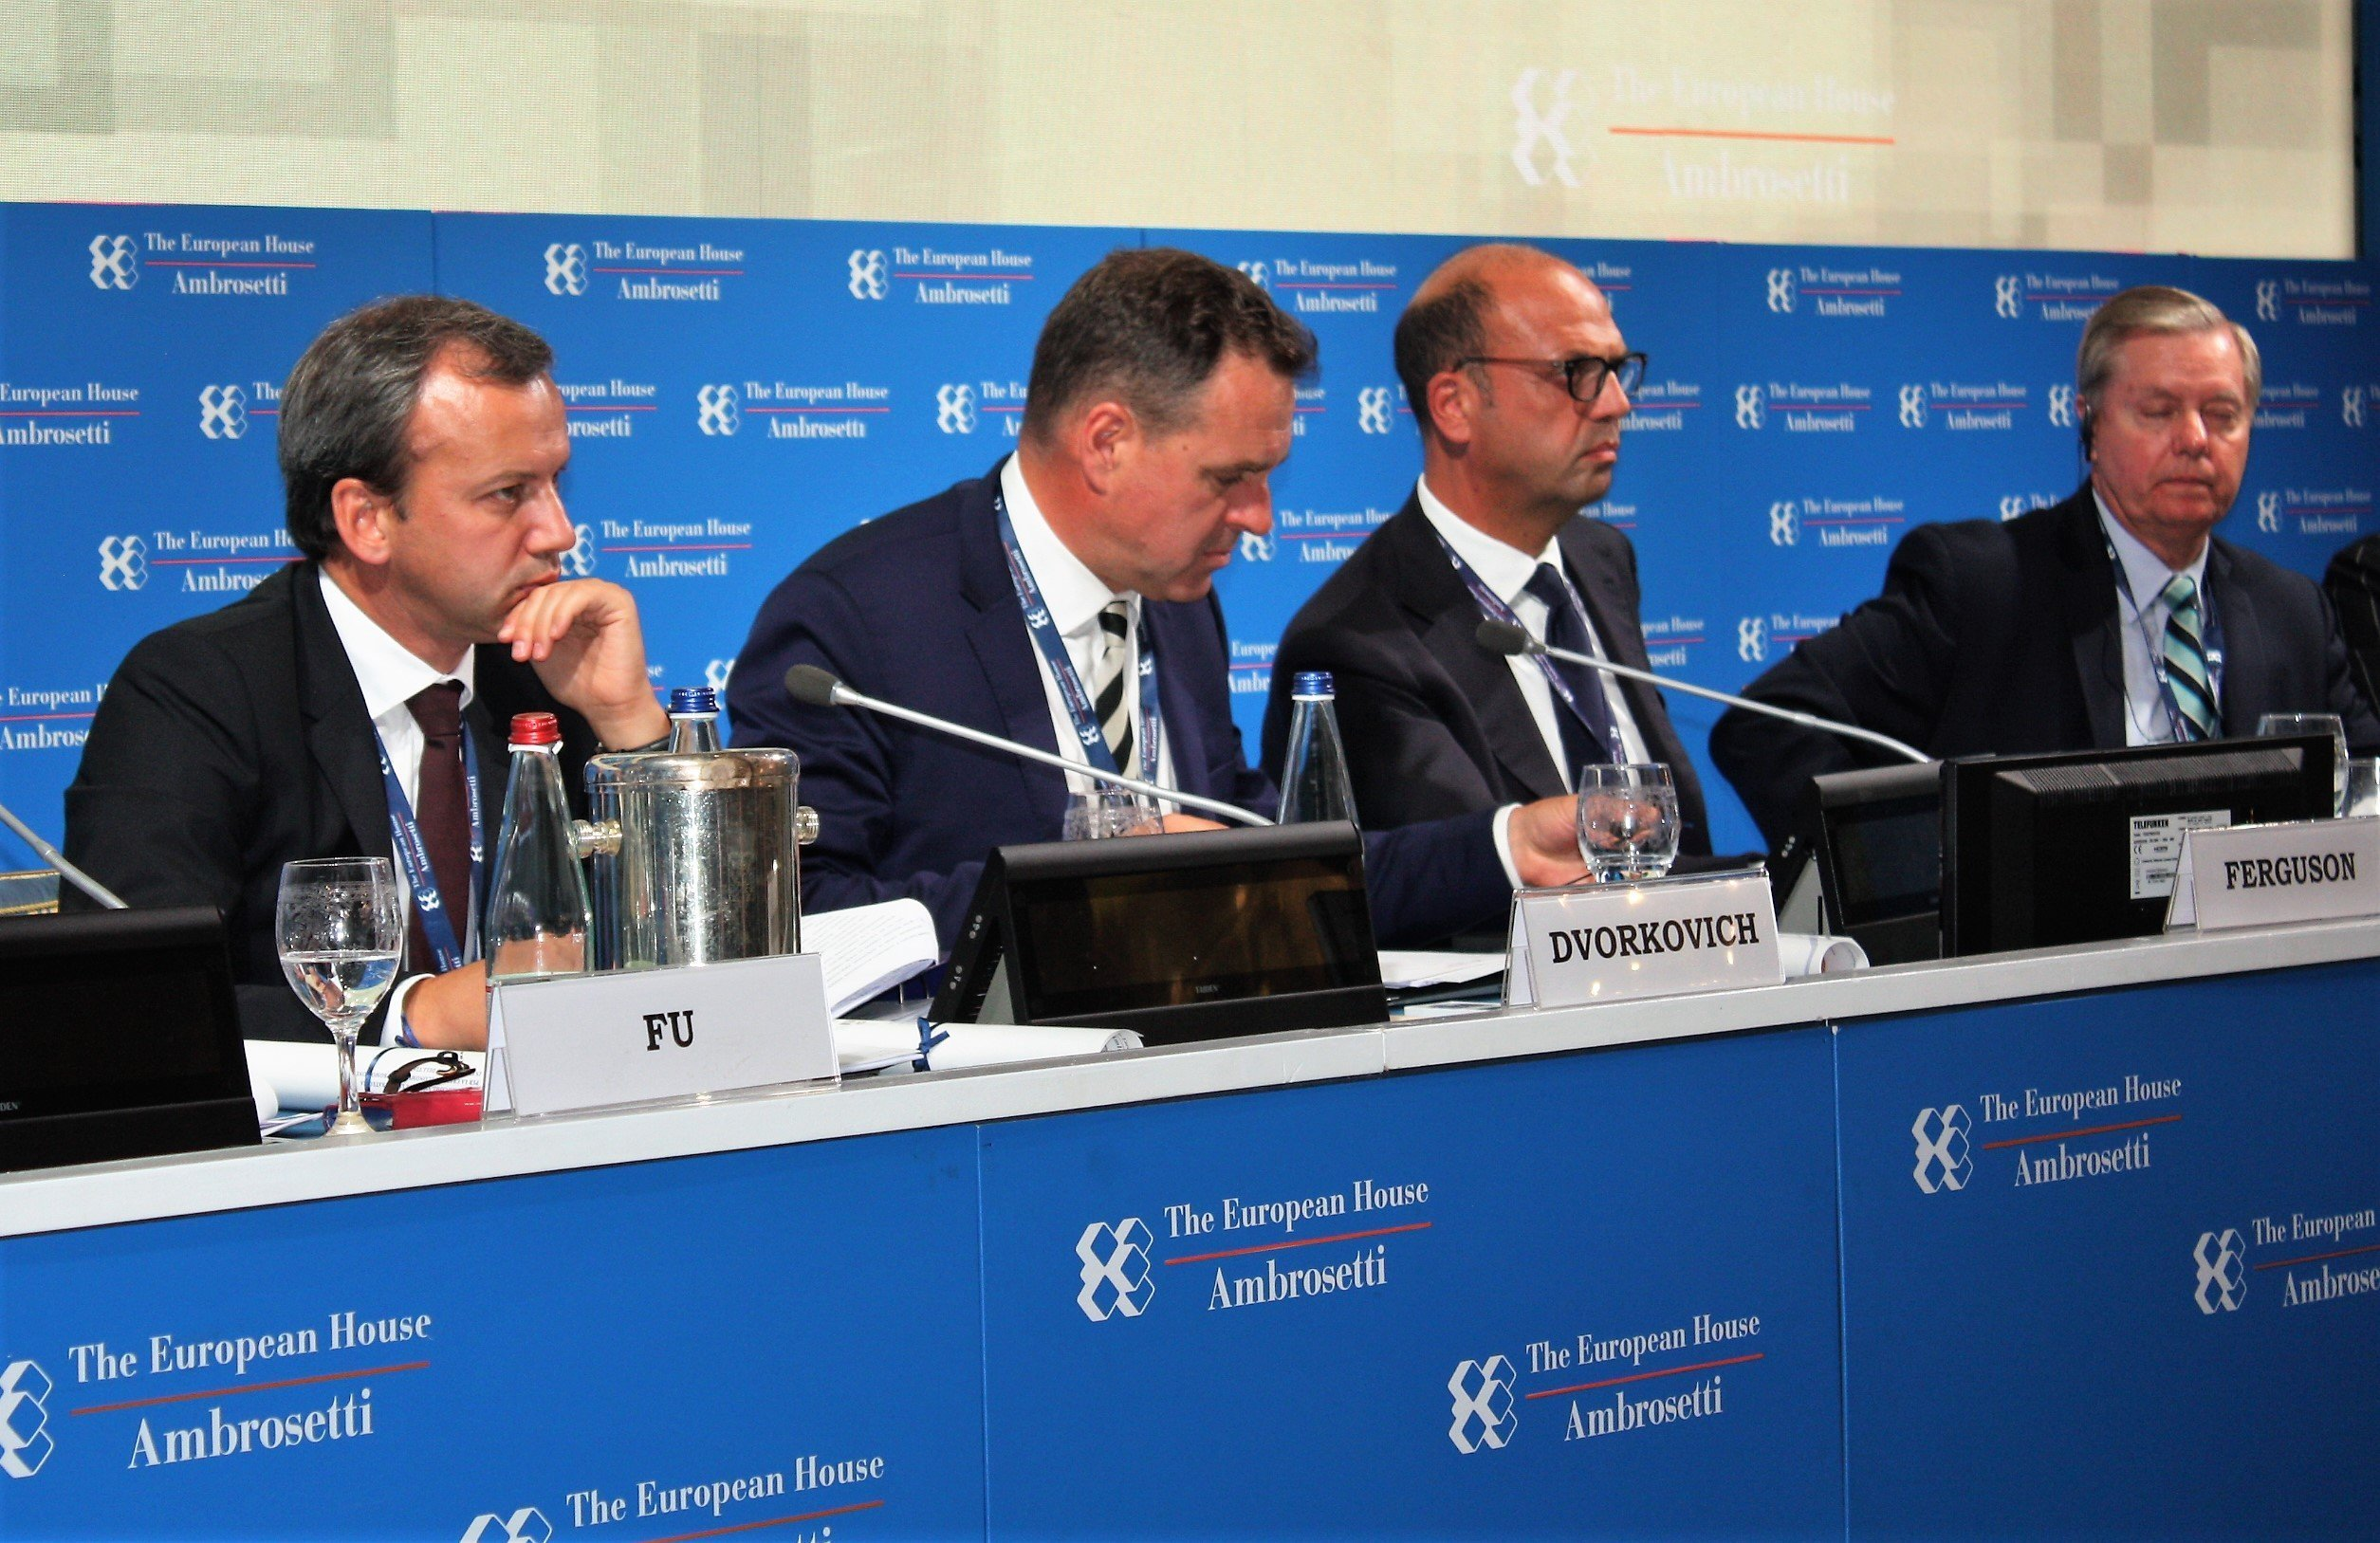 Al Forum The European House – Ambrosetti a Cernobbio.